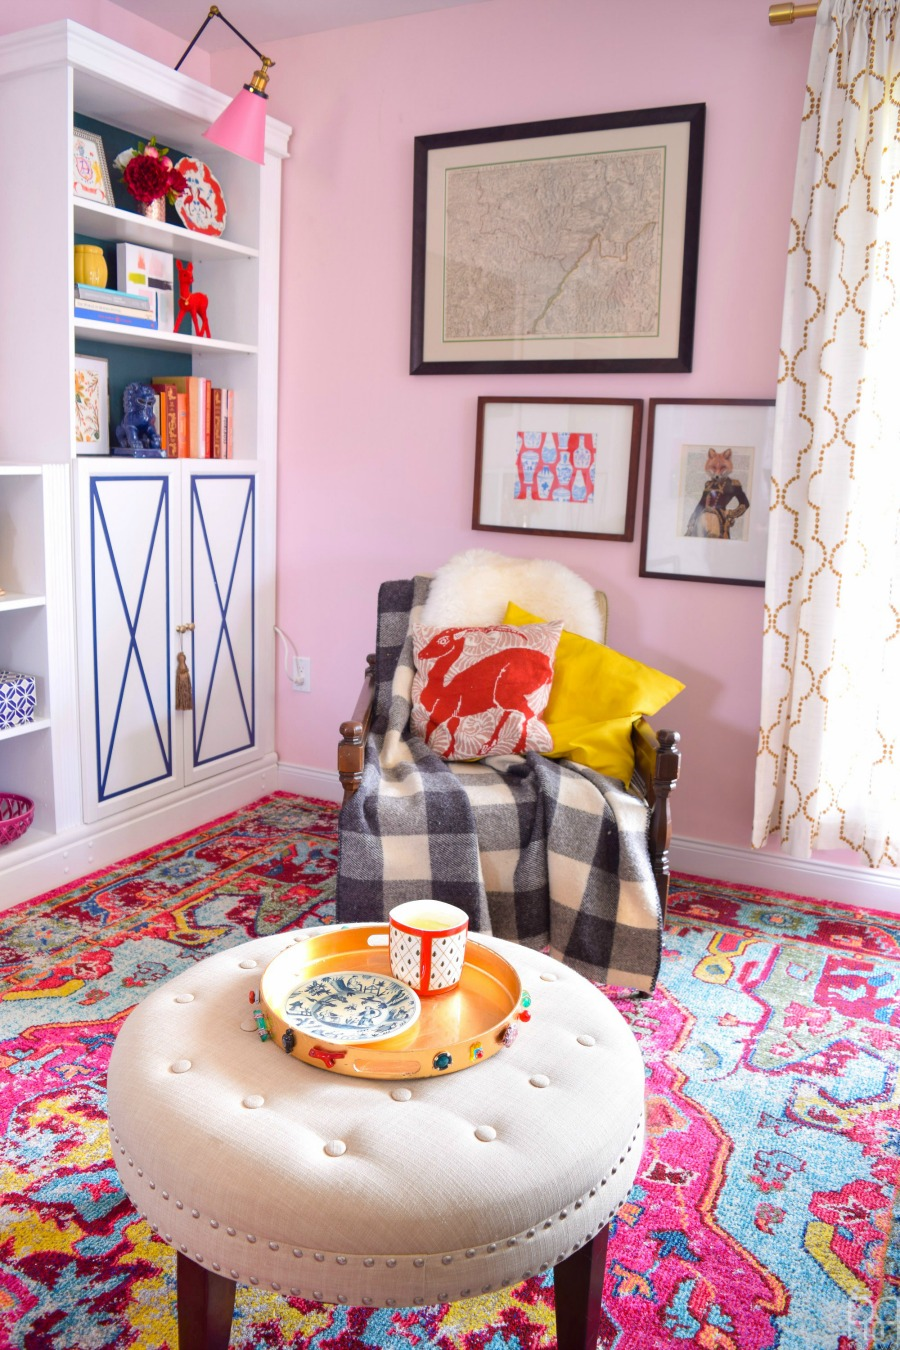 Eclectic Home Tour of PMQ for Two - get tons of renter friendly decorating and DIY ideas and paint ideas